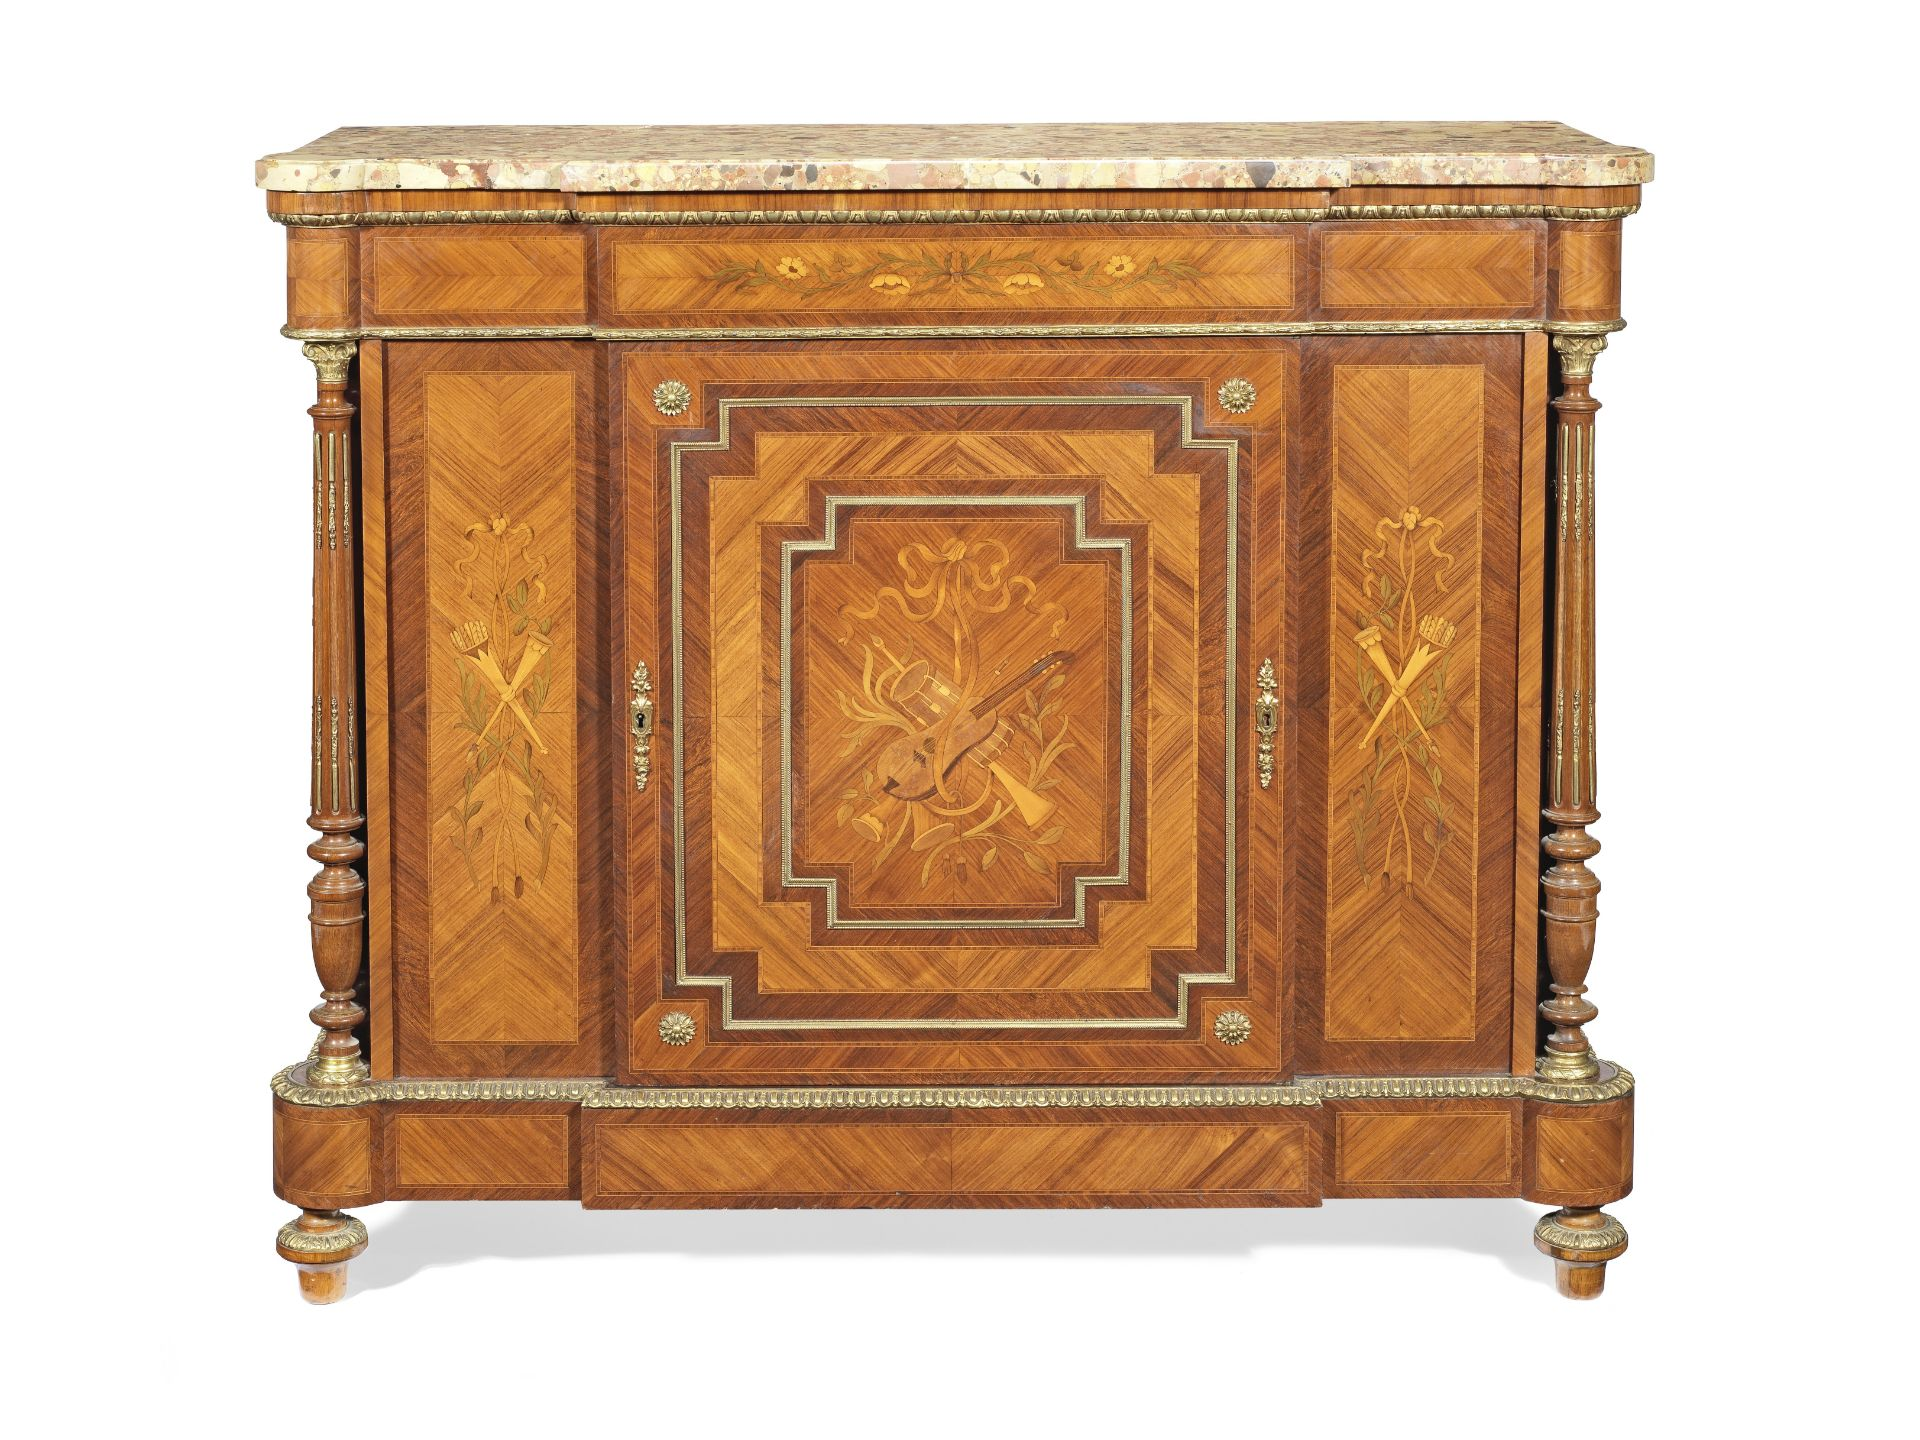 A Napoleon III gilt bronze mounted tulipwood, rosewood and marquetry hauteur d'appui or low cabinet - Image 2 of 3